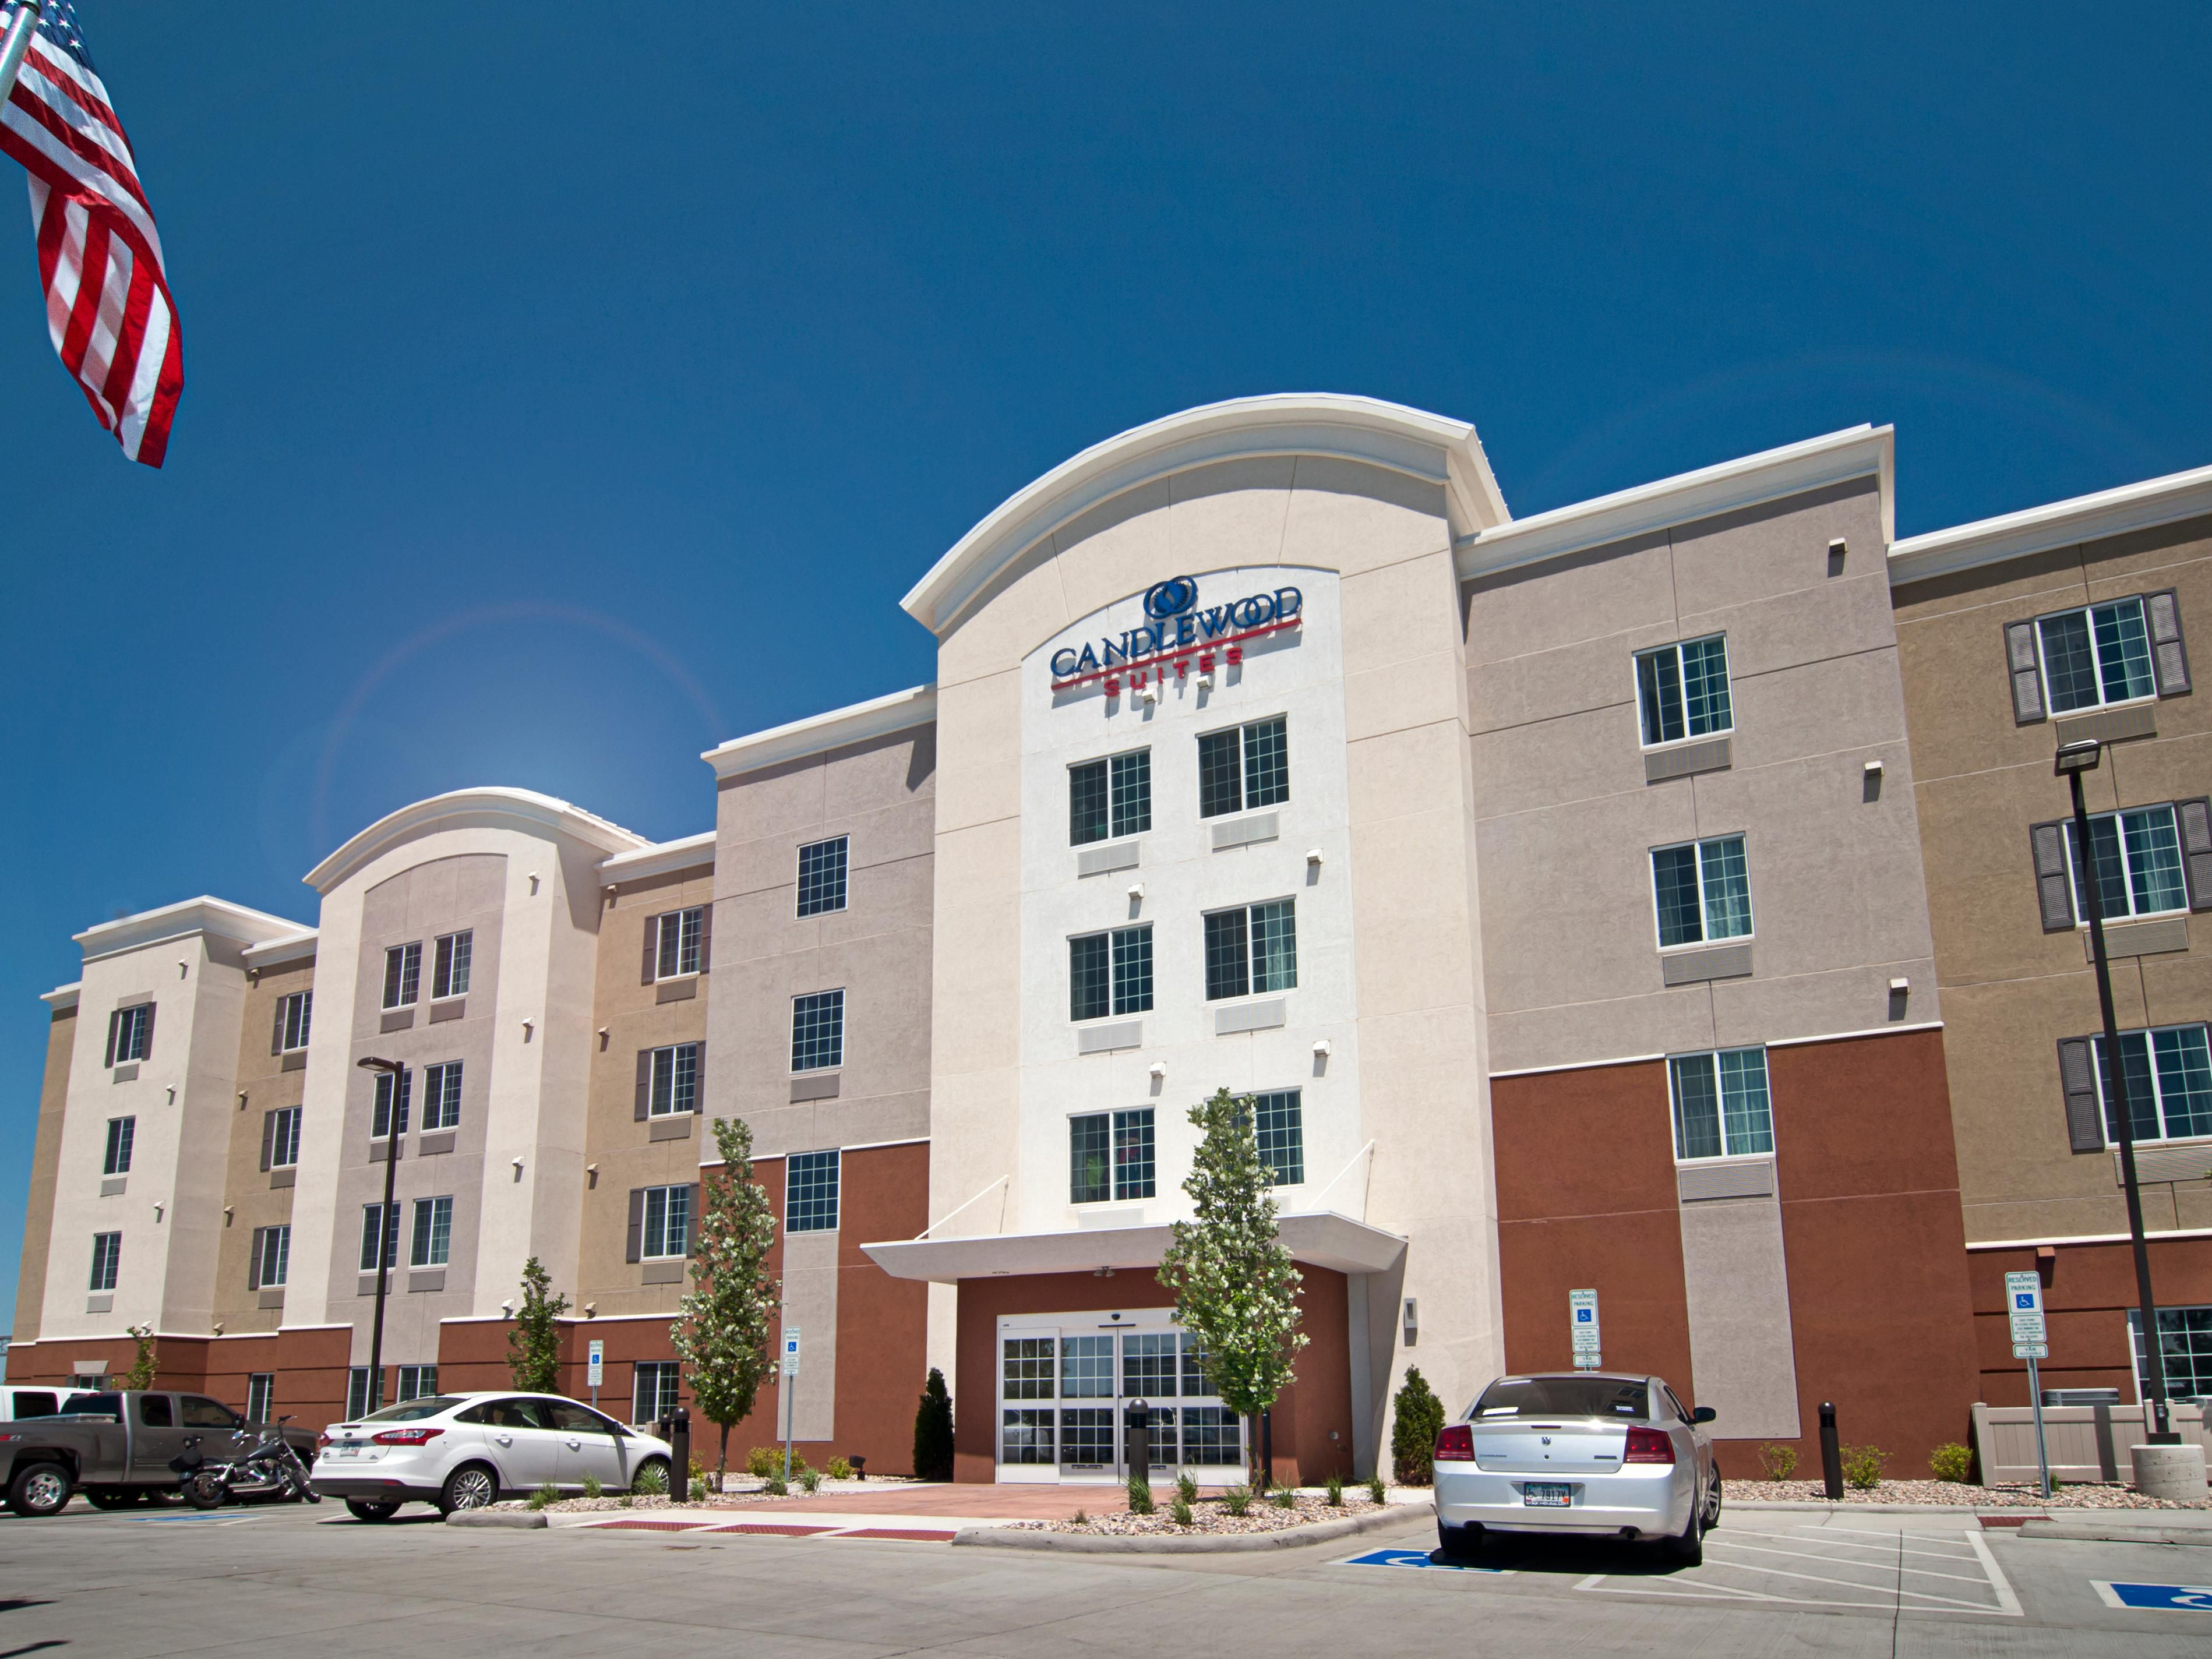 Candlewood Suites Sioux Falls - Extended Stay Hotel in Sioux